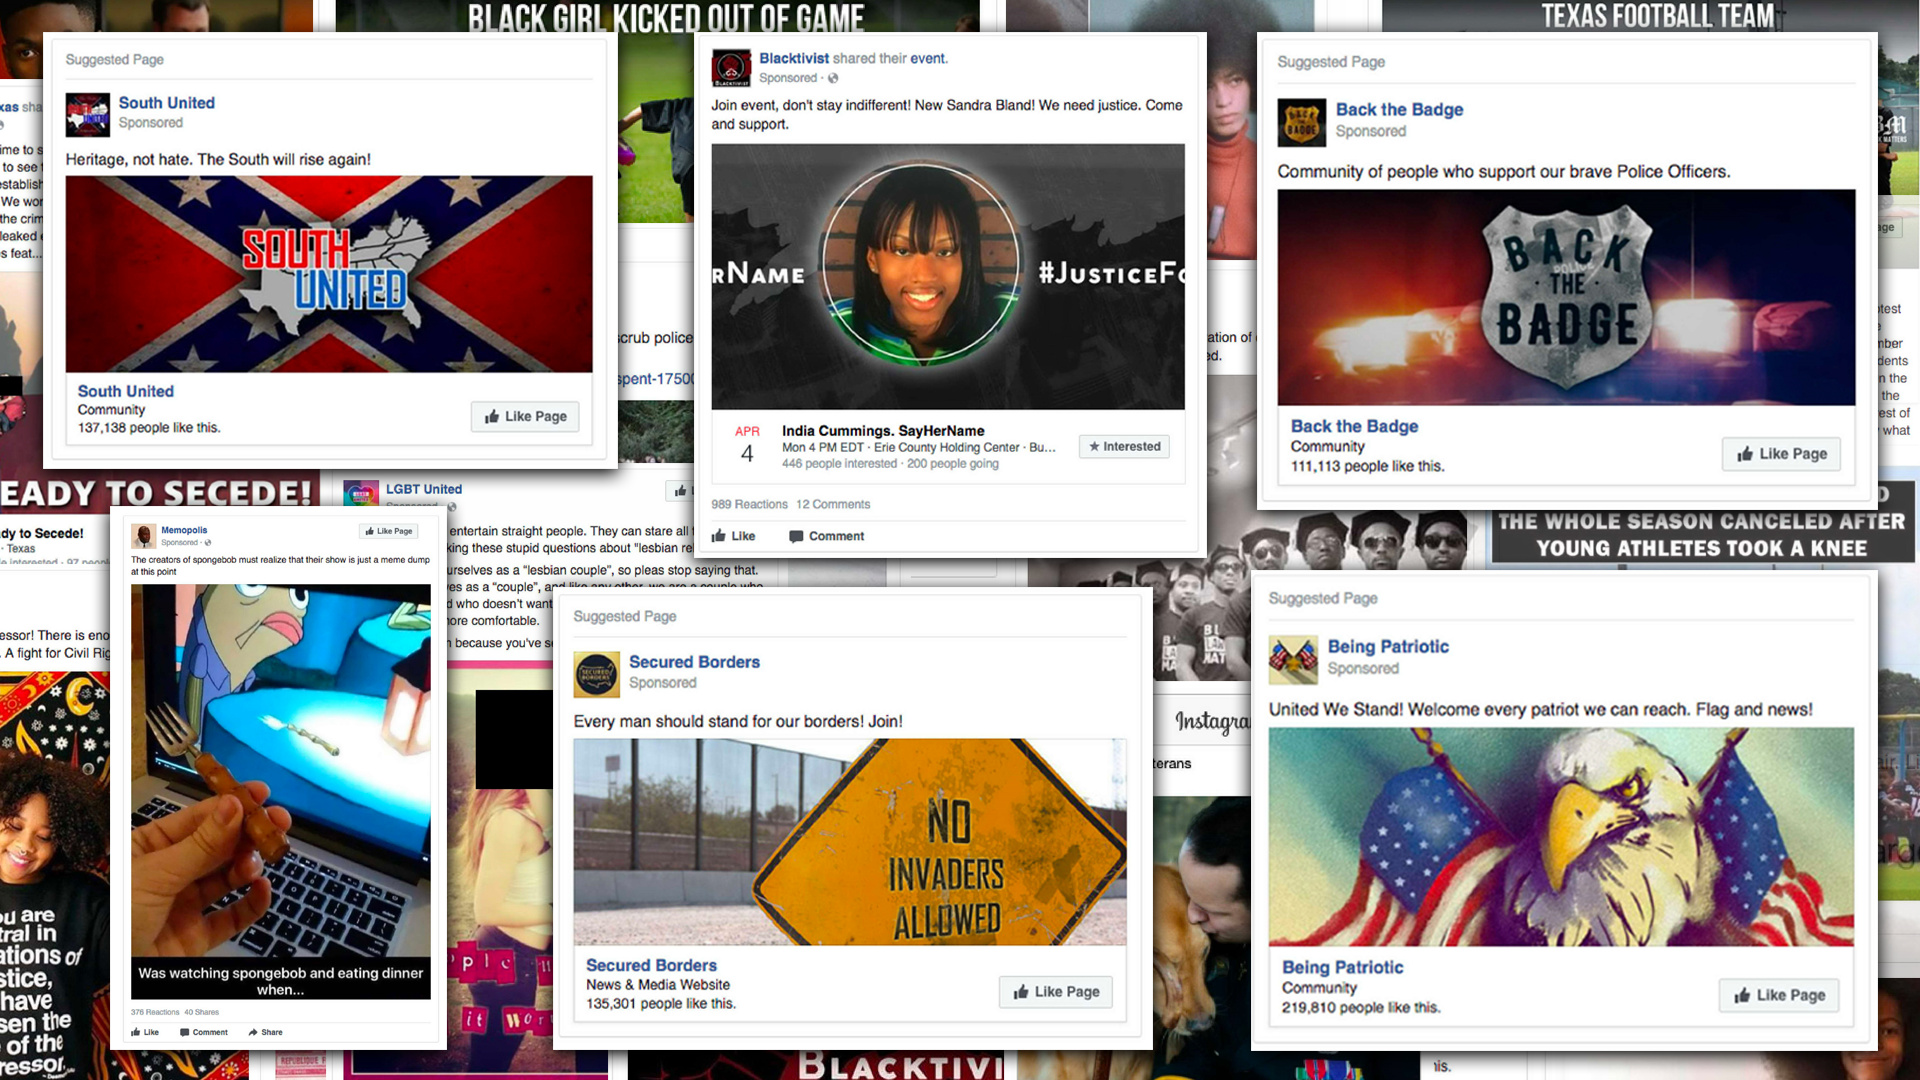 Six Facebook ads in the foreground, and more in the background